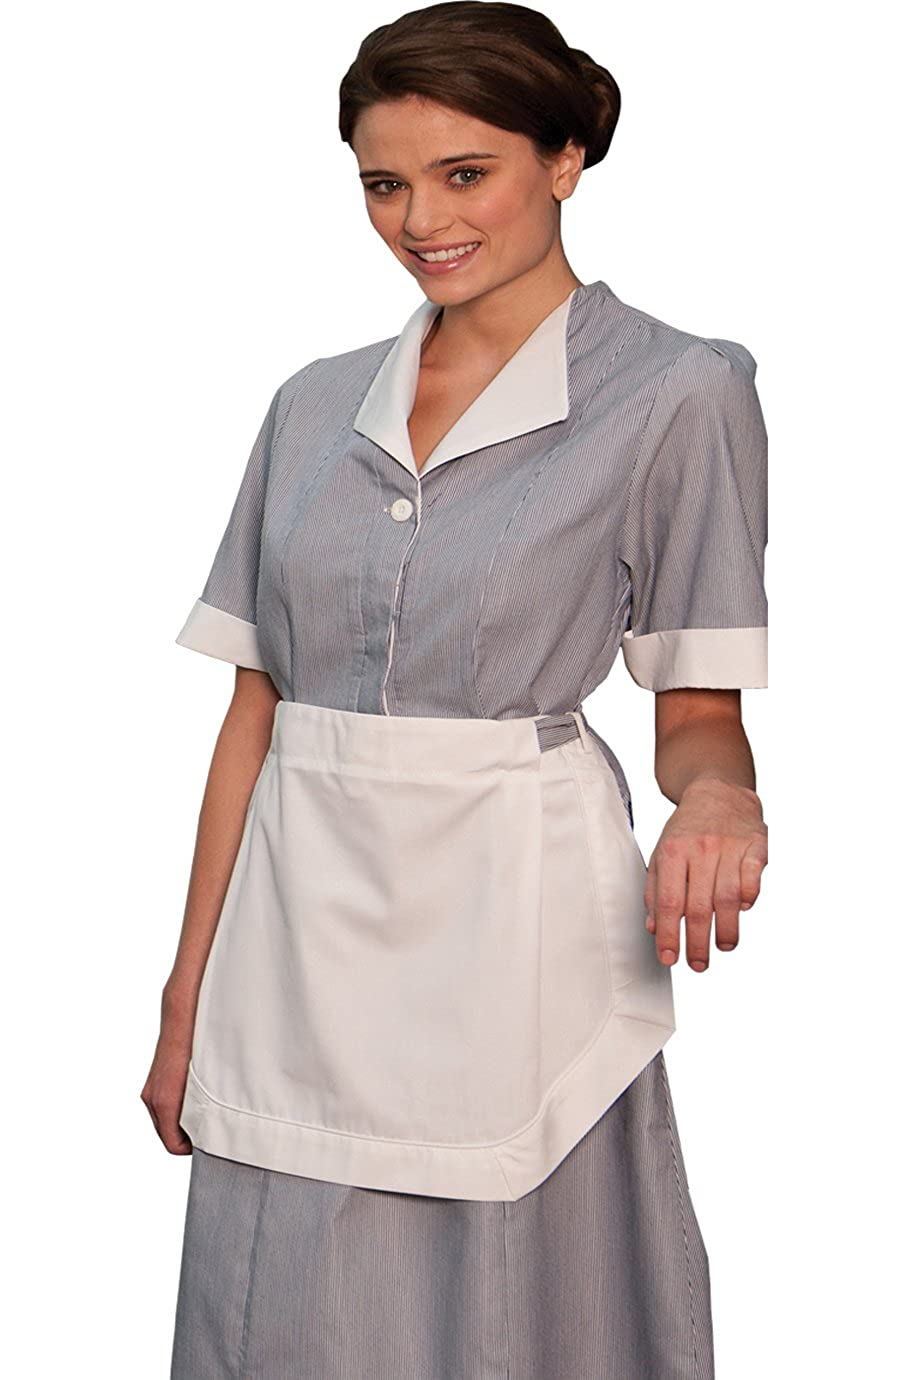 a59bffc5721 Amazon.com: Edwards Women's Junior Cord Housekeeping Dress, TEAL, A:  Clothing